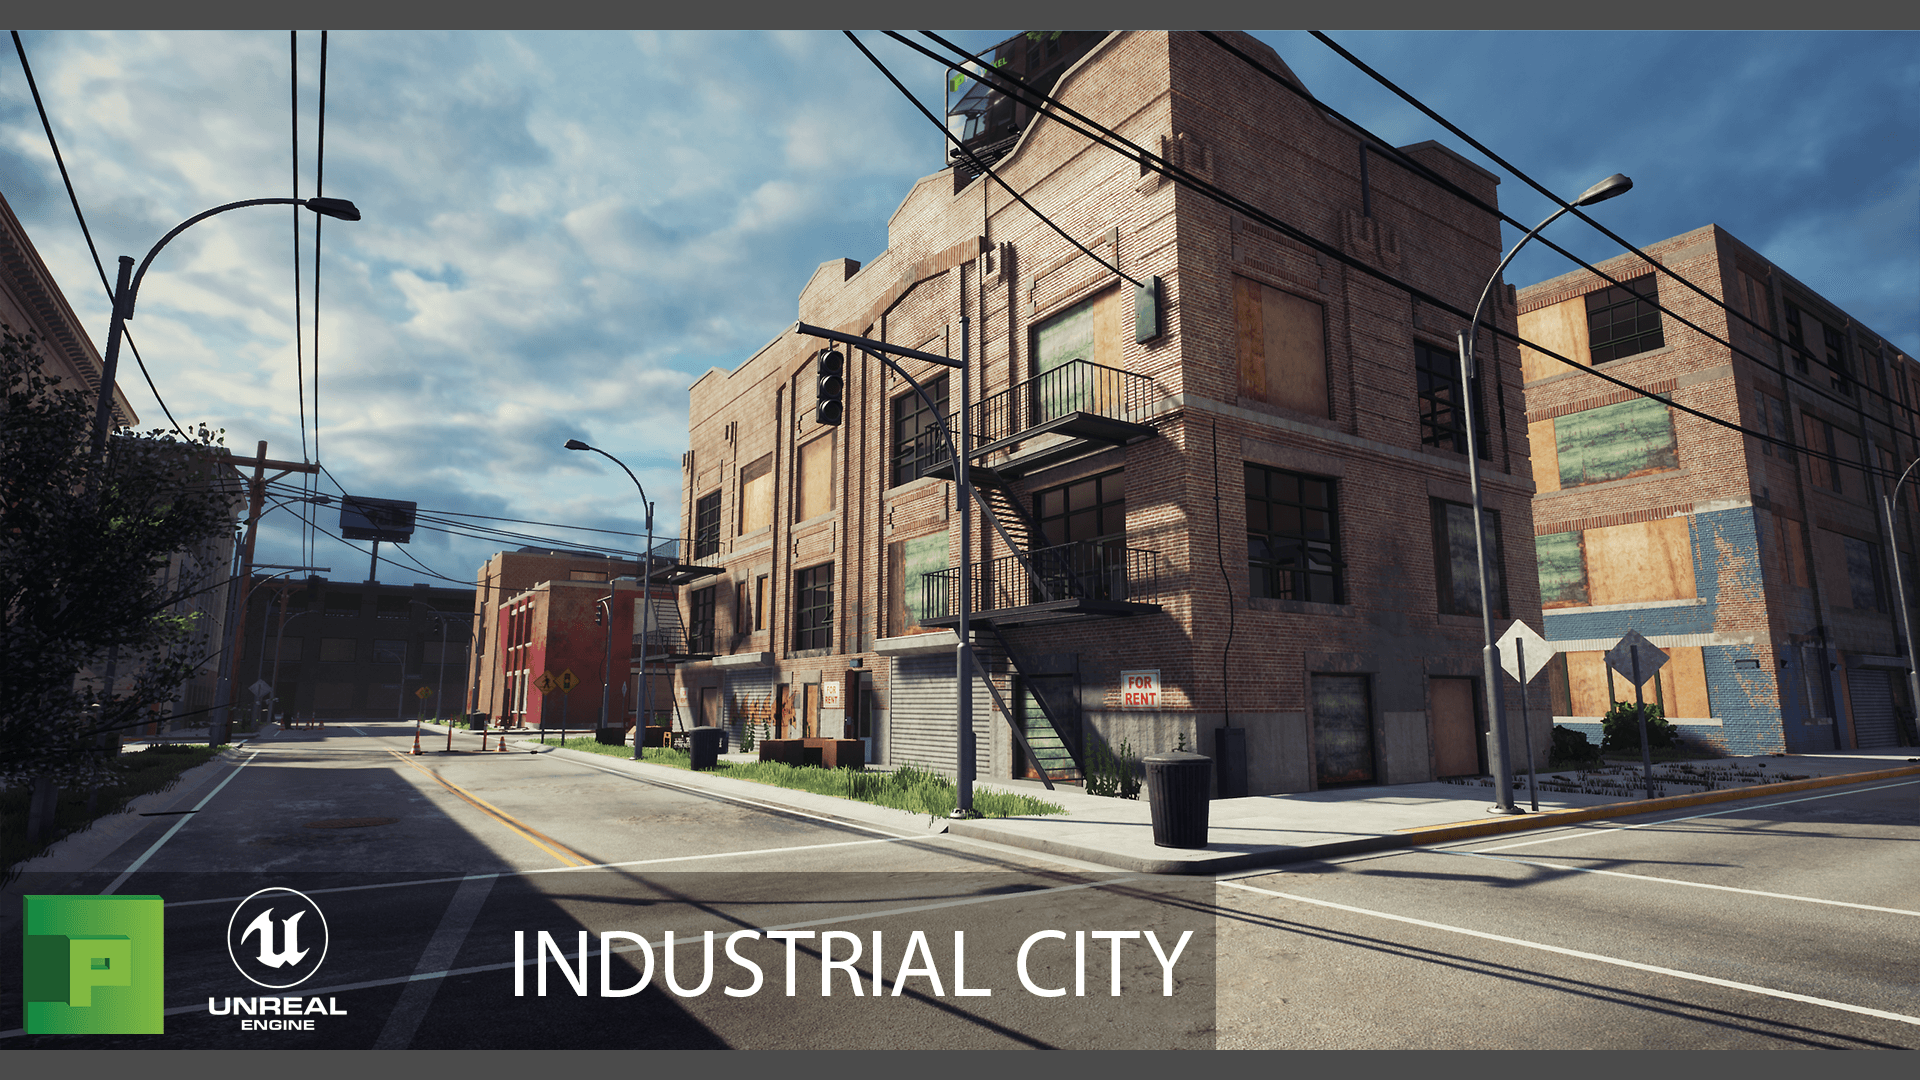 Industrial City By Polypixel In Environments Ue4 Marketplace